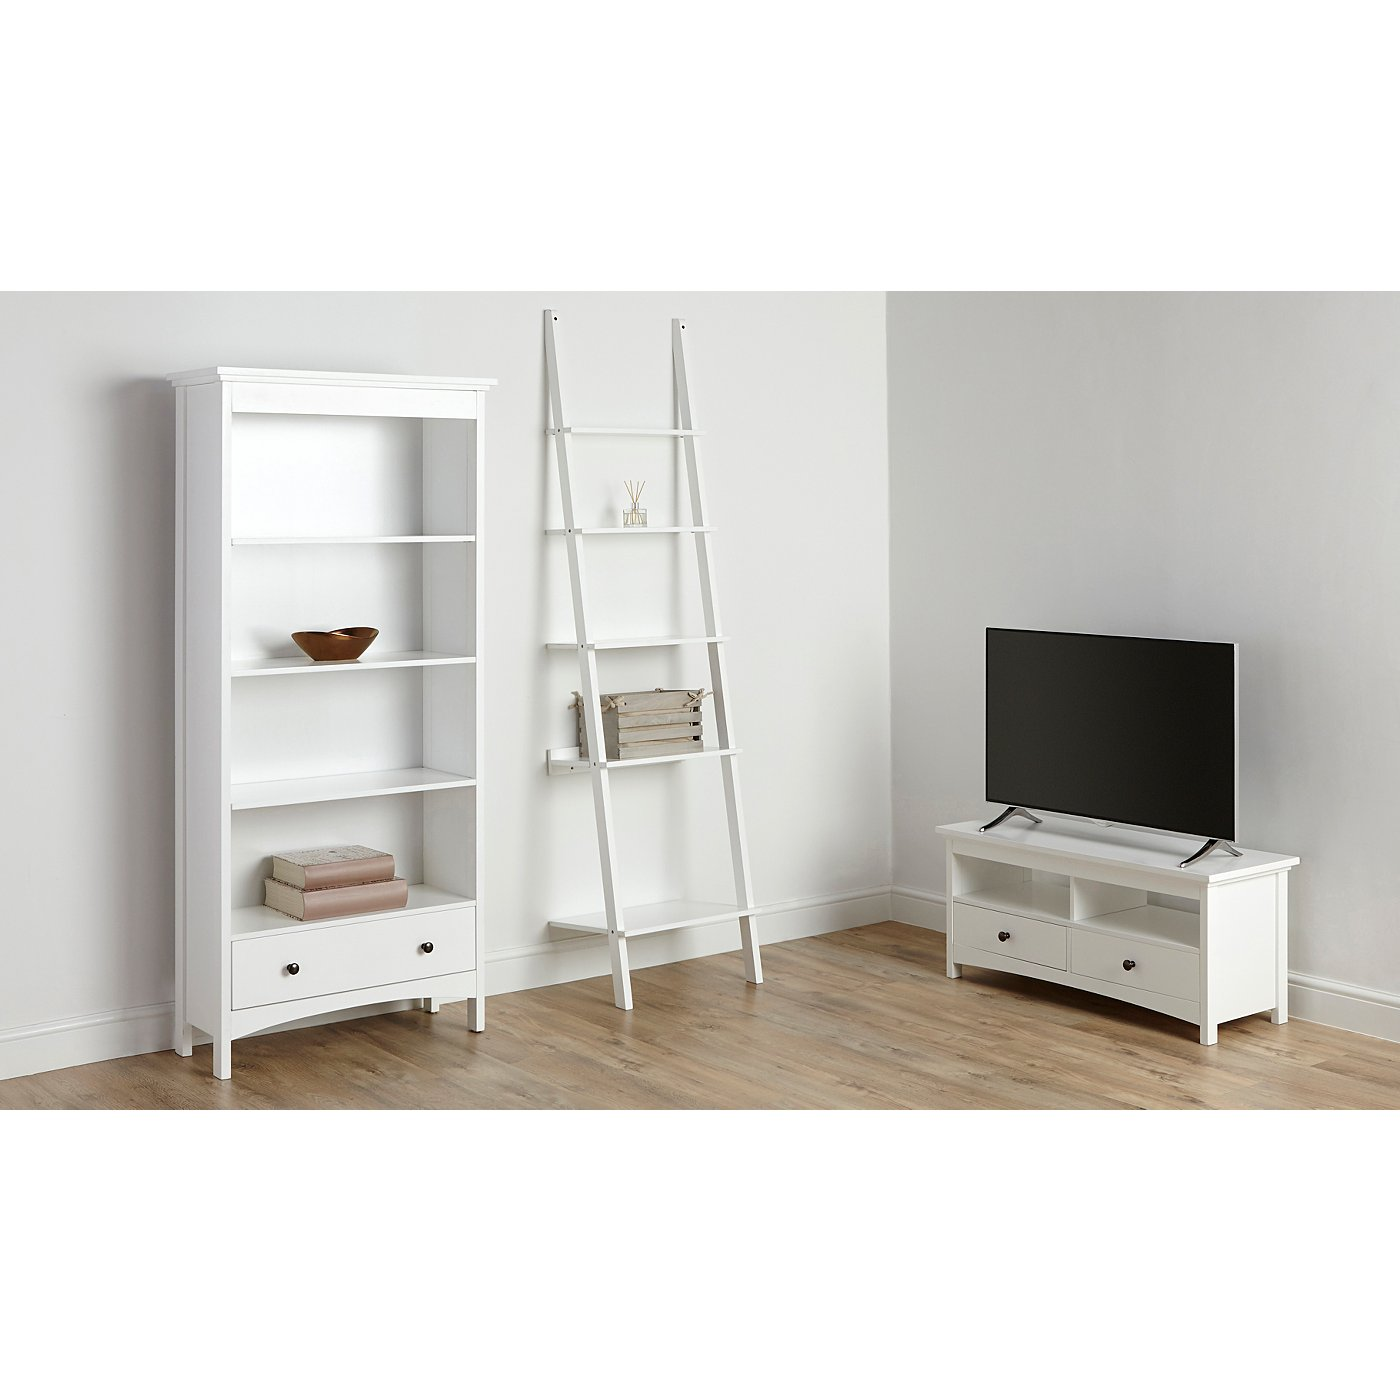 The Range Living Room Furniture George Home Tamsin Living Room Furniture Range White Living